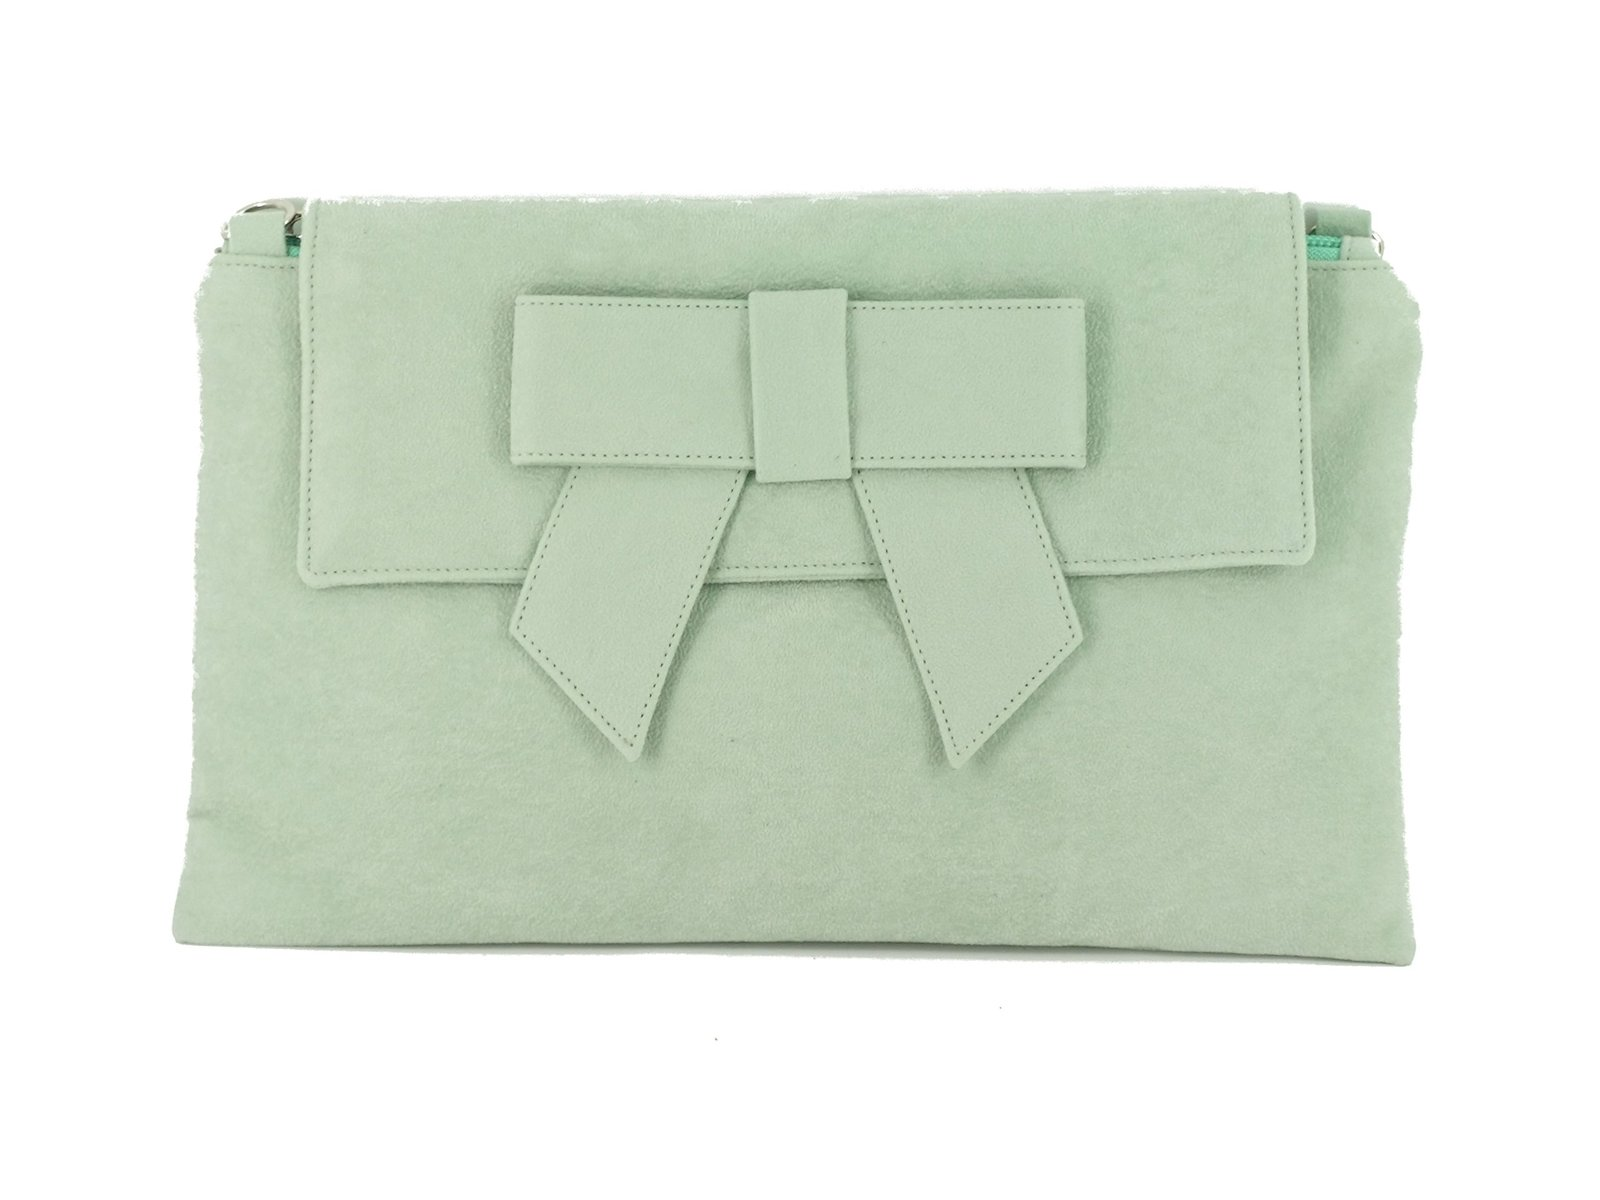 LONI Womens Clutch Bag Shoulder Bag Wristlet in Suede Faux Leather in Aqua Pa...